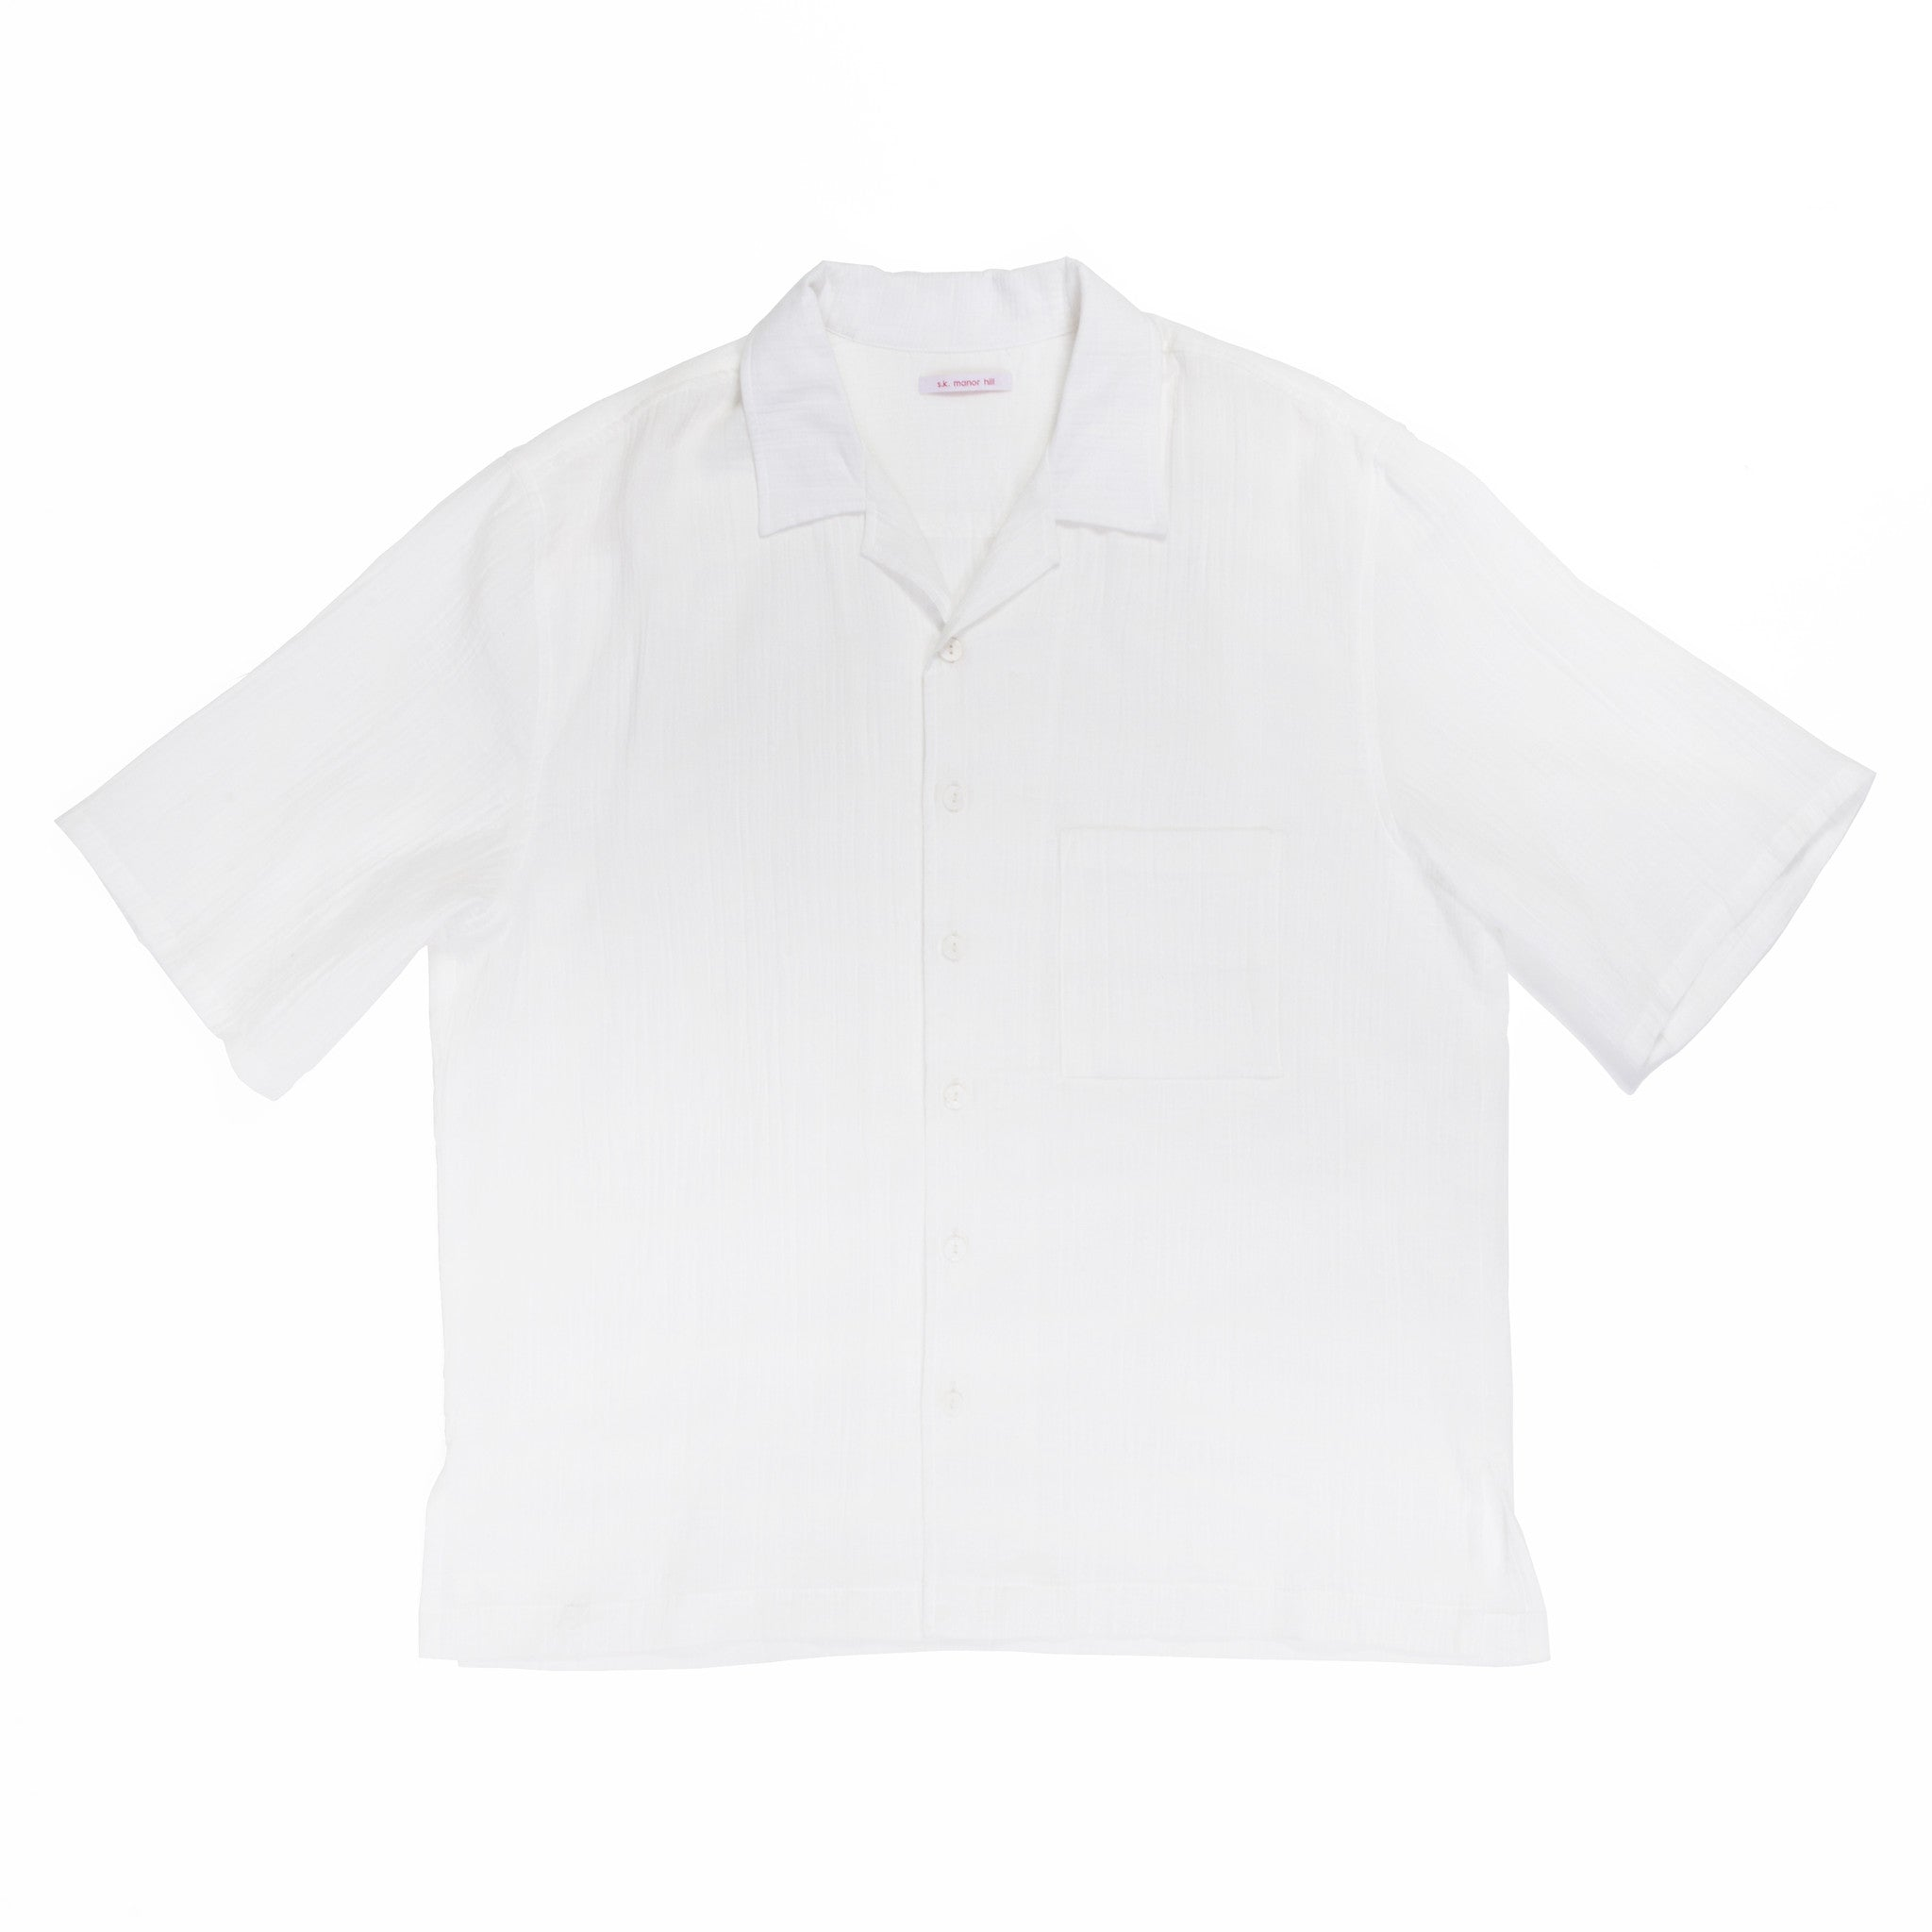 Aloha Shirt - White Organic Cotton